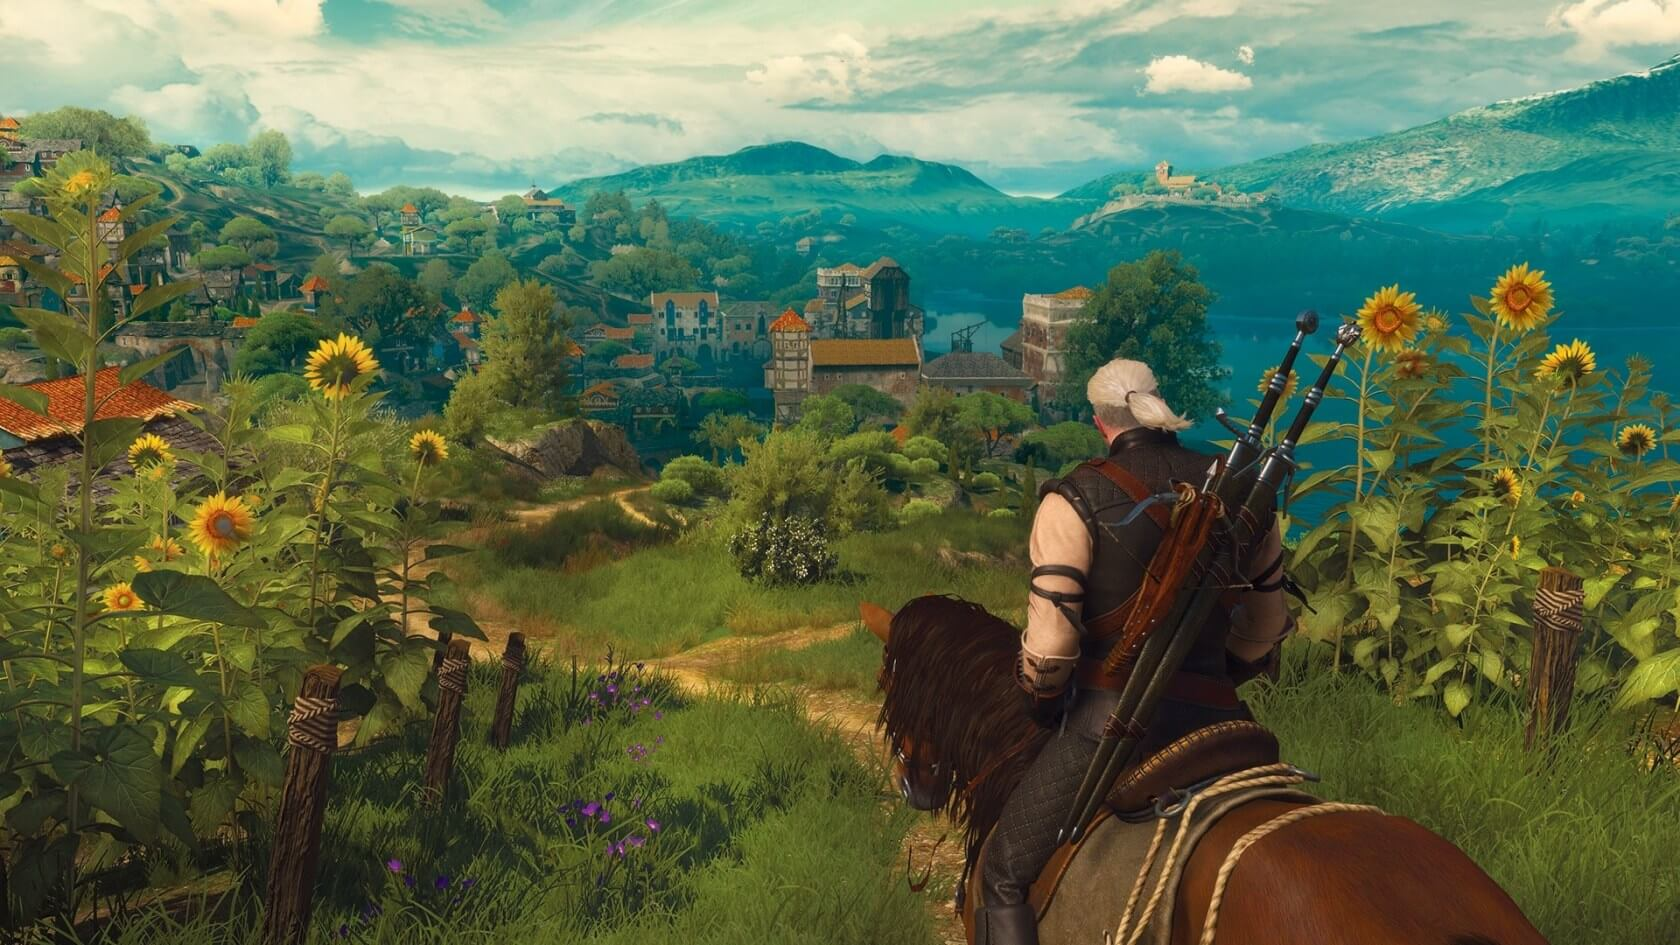 The Witcher 3 has more Steam players now than it did on launch